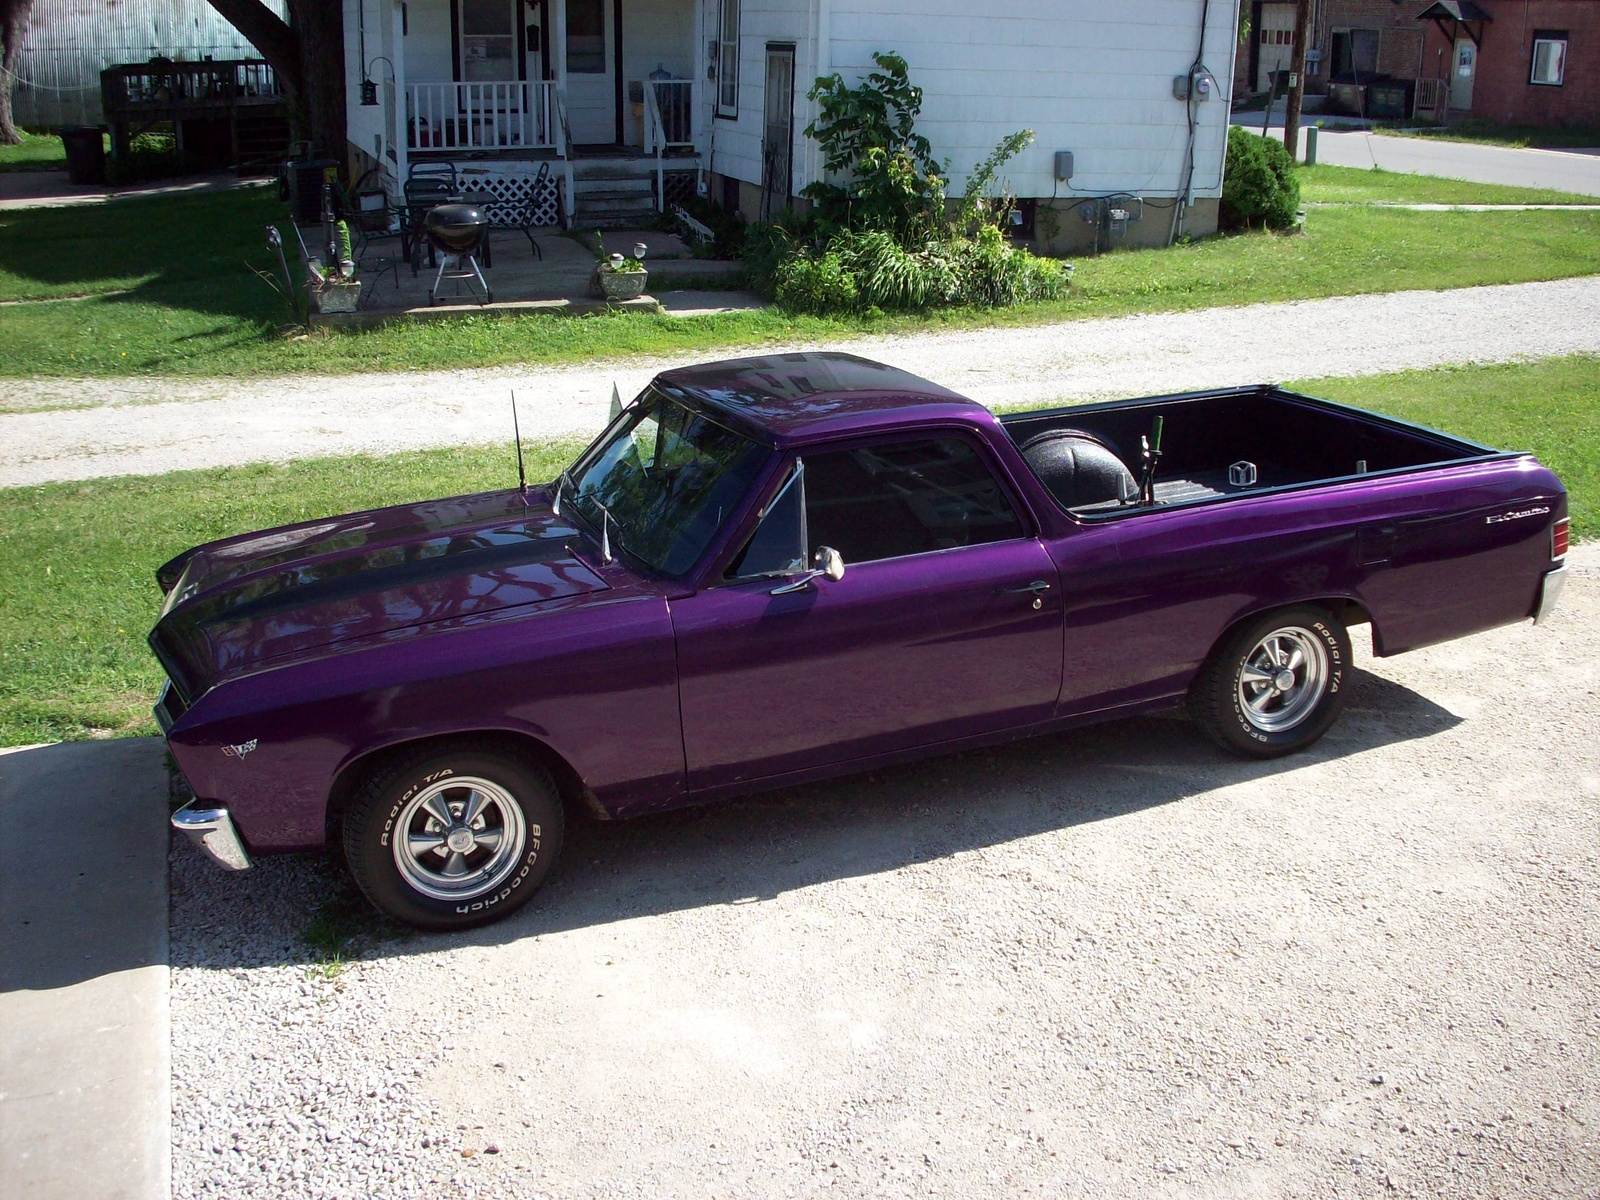 1967 Chevrolet C50 http://flipacars.com/searches/1967-chevrolet-el-camino/